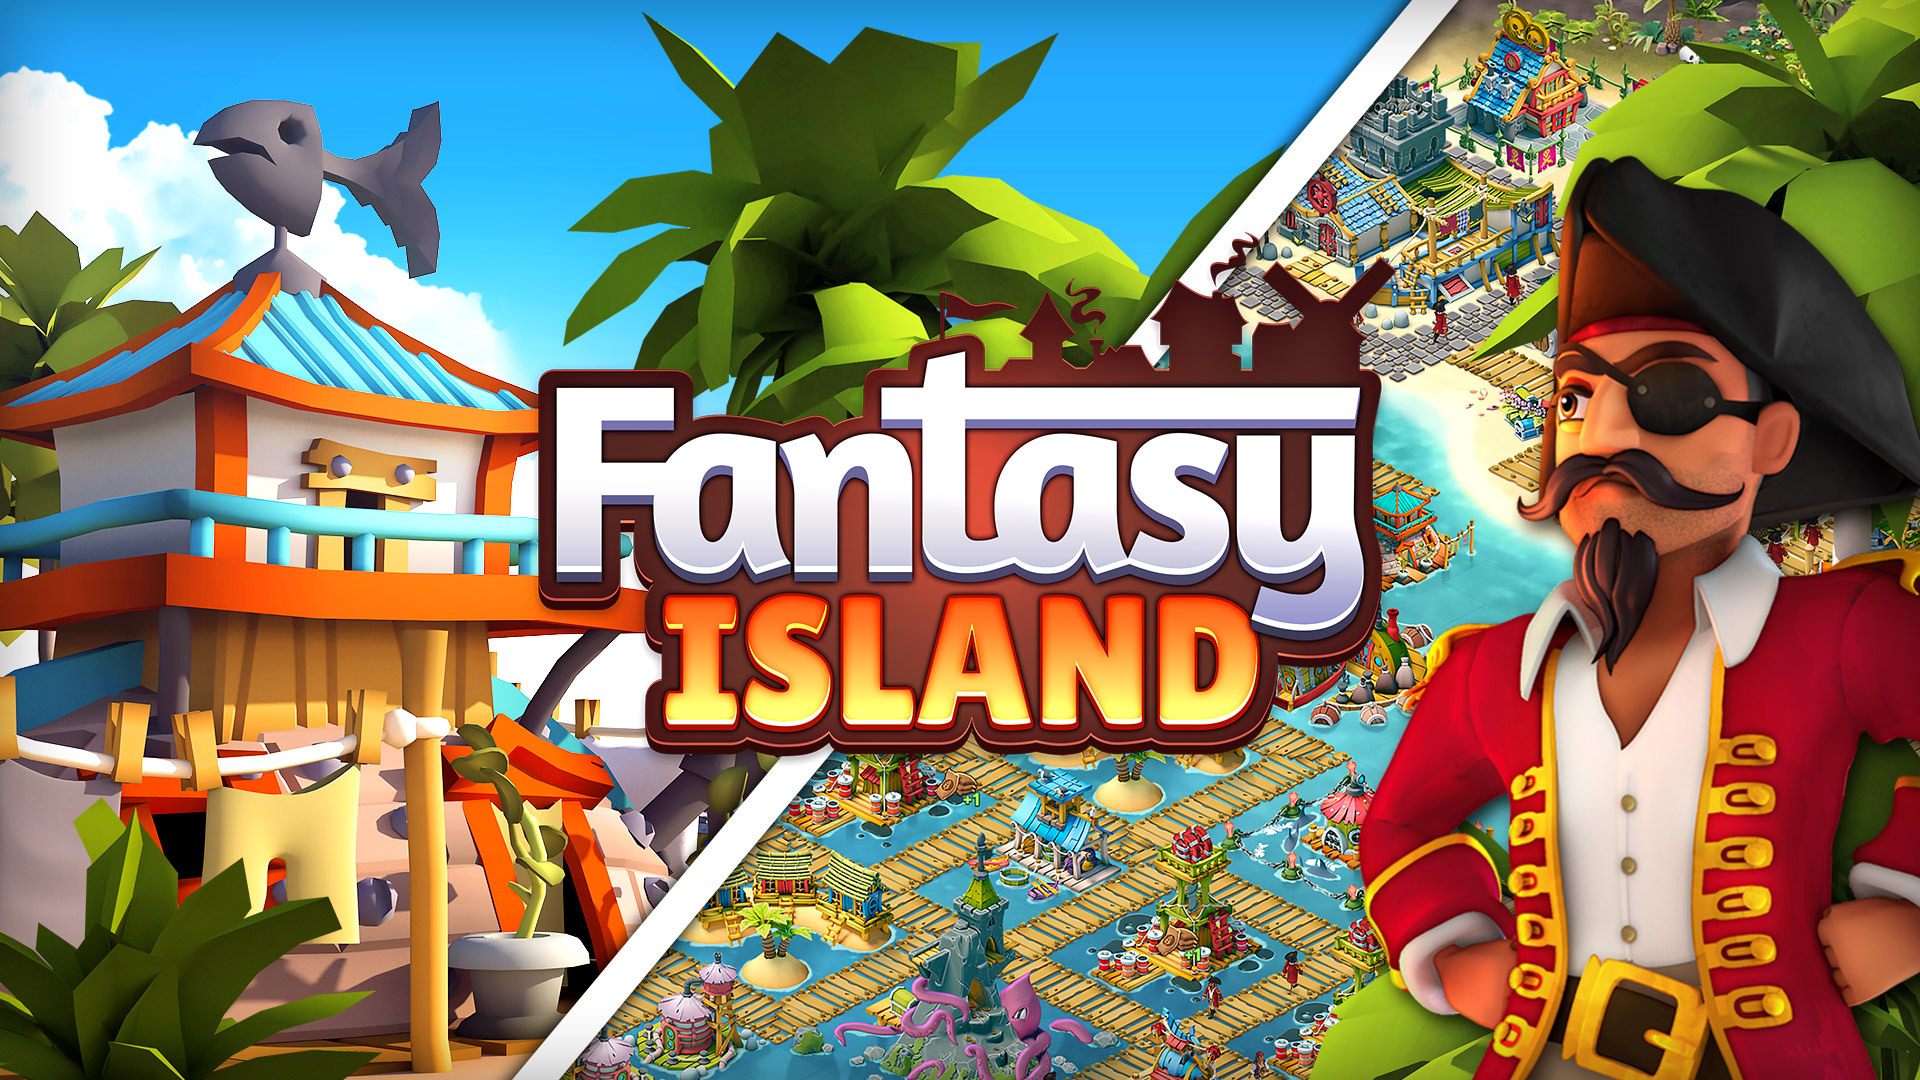 Fantasy Island Sim - Fun Forest Adventure